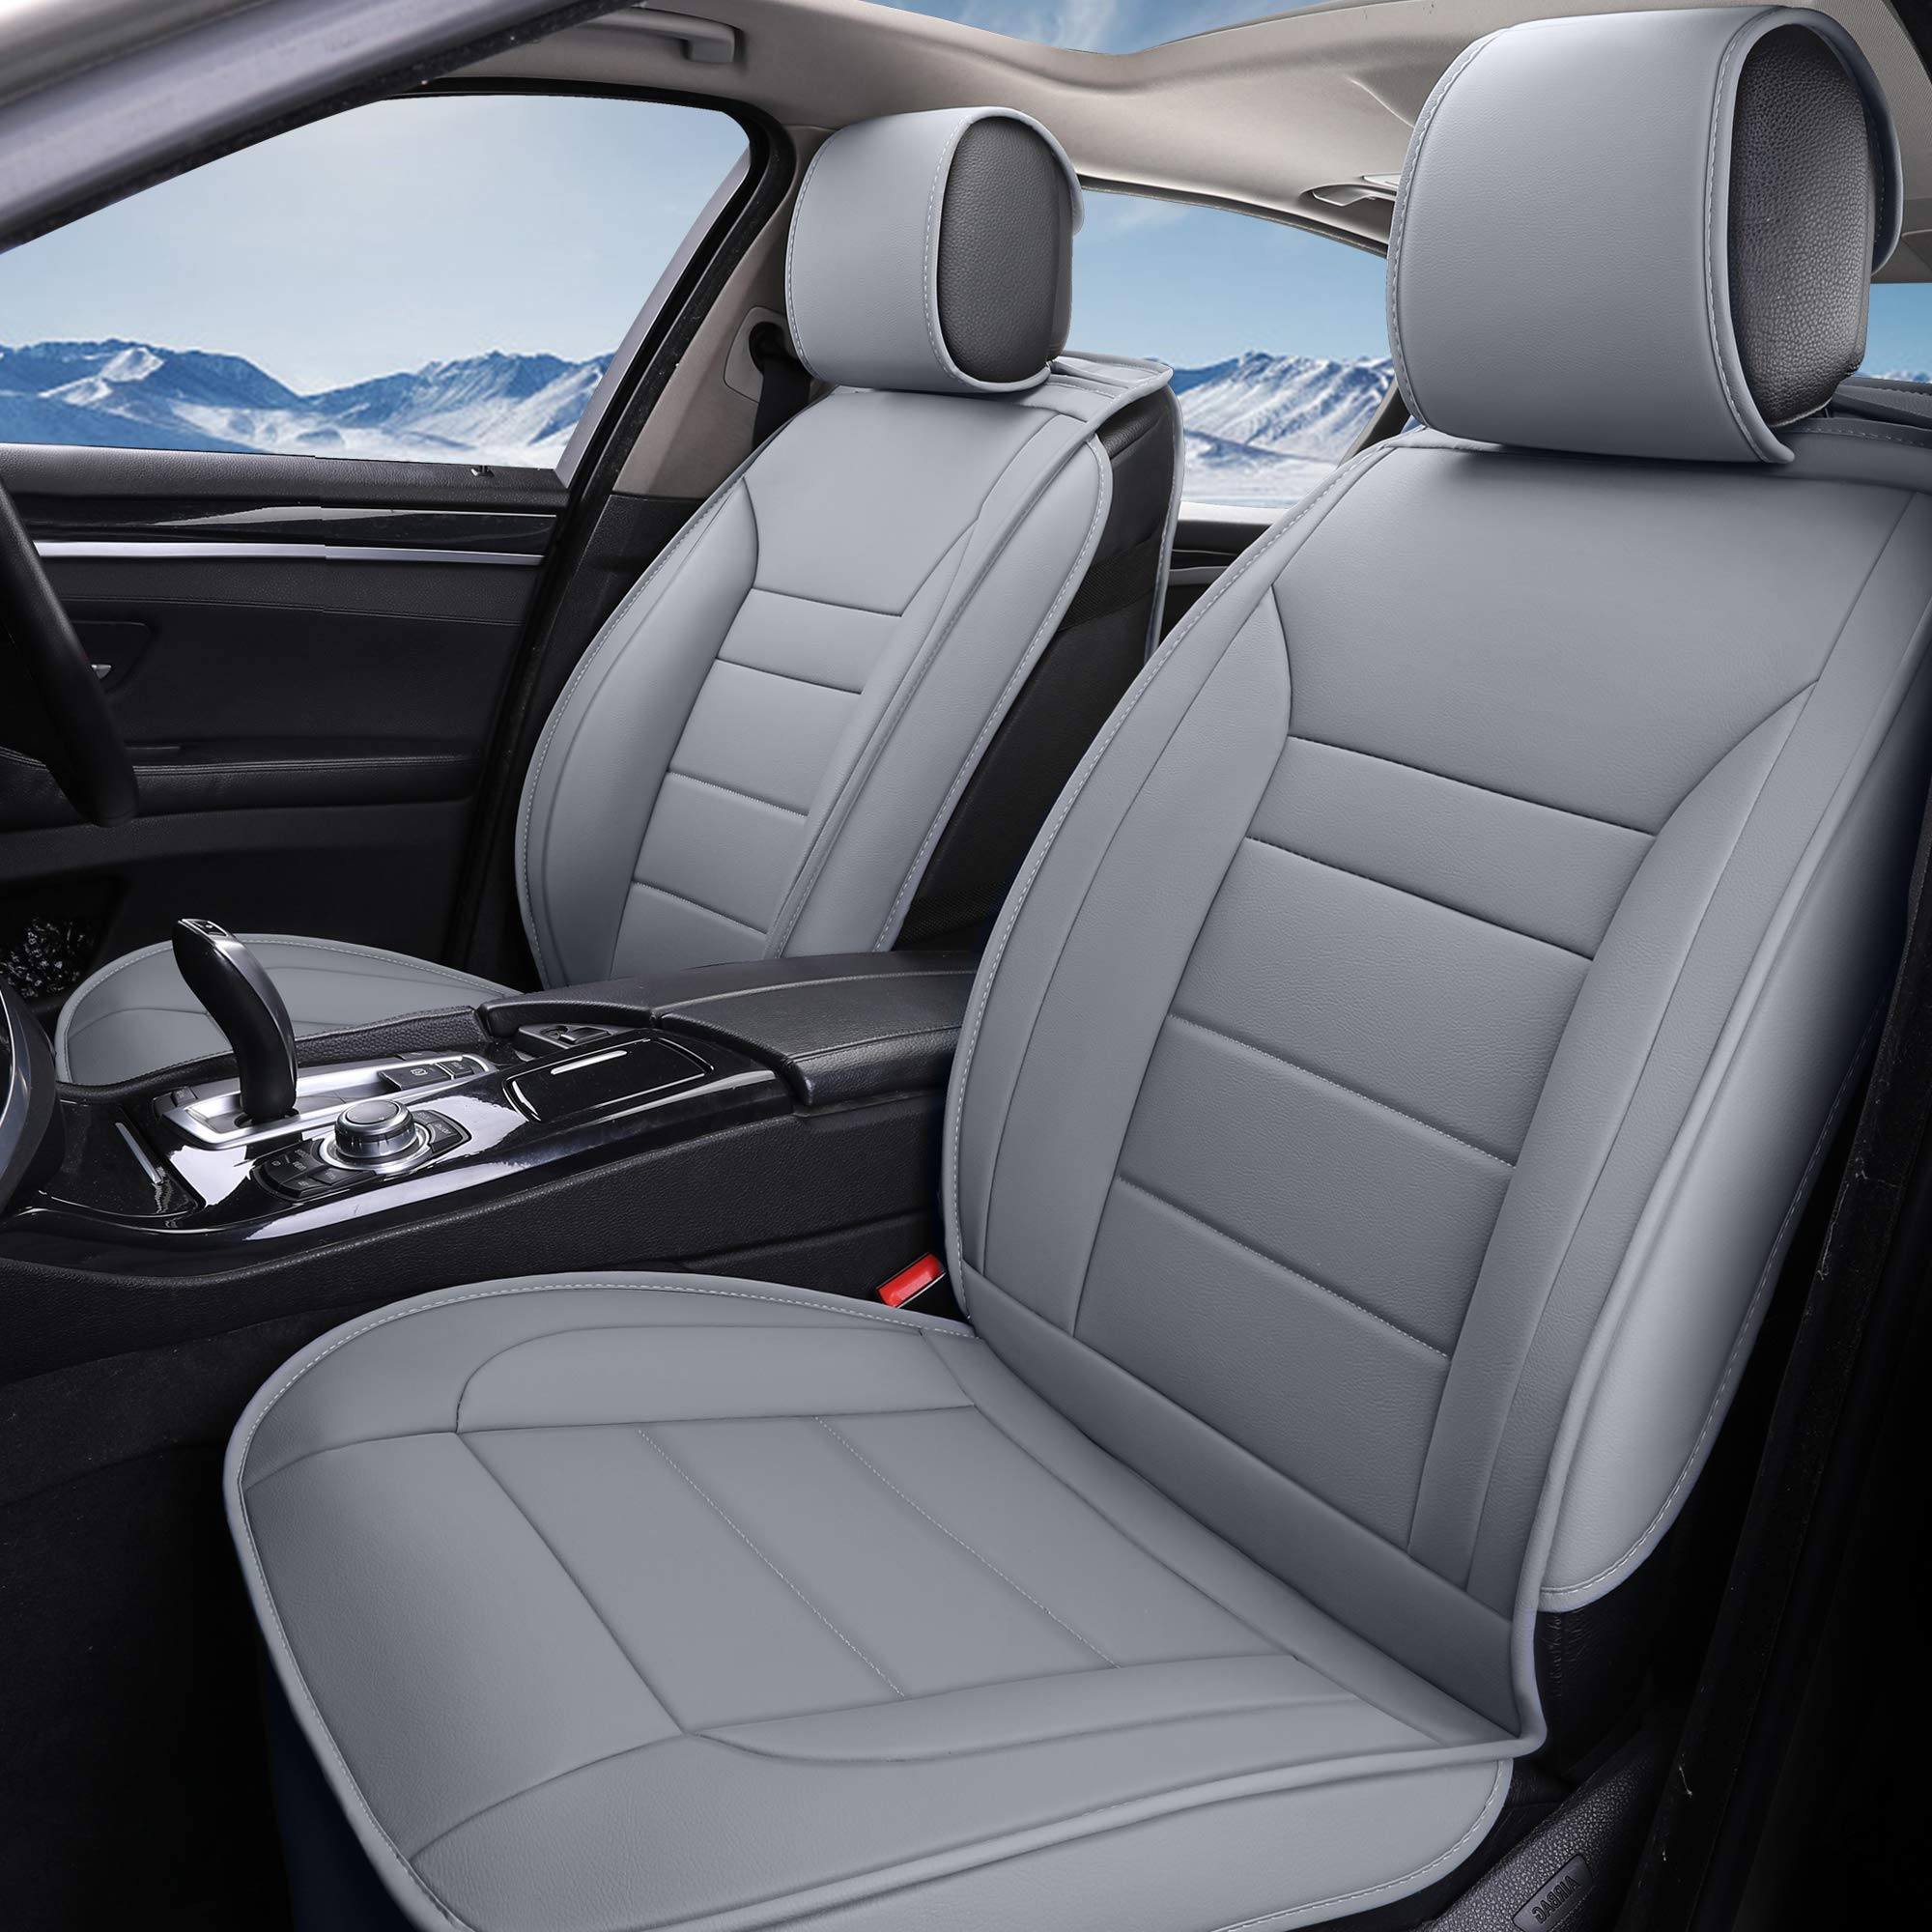 INCH EMPIRE Car Seat Cover-Water Proof Synthetic Leather Cushion Front and Back Universal Fit for Most of Sedan SUV Truck Hatchback Durable Use for All Season(5 Seats Grey Line Full Set)